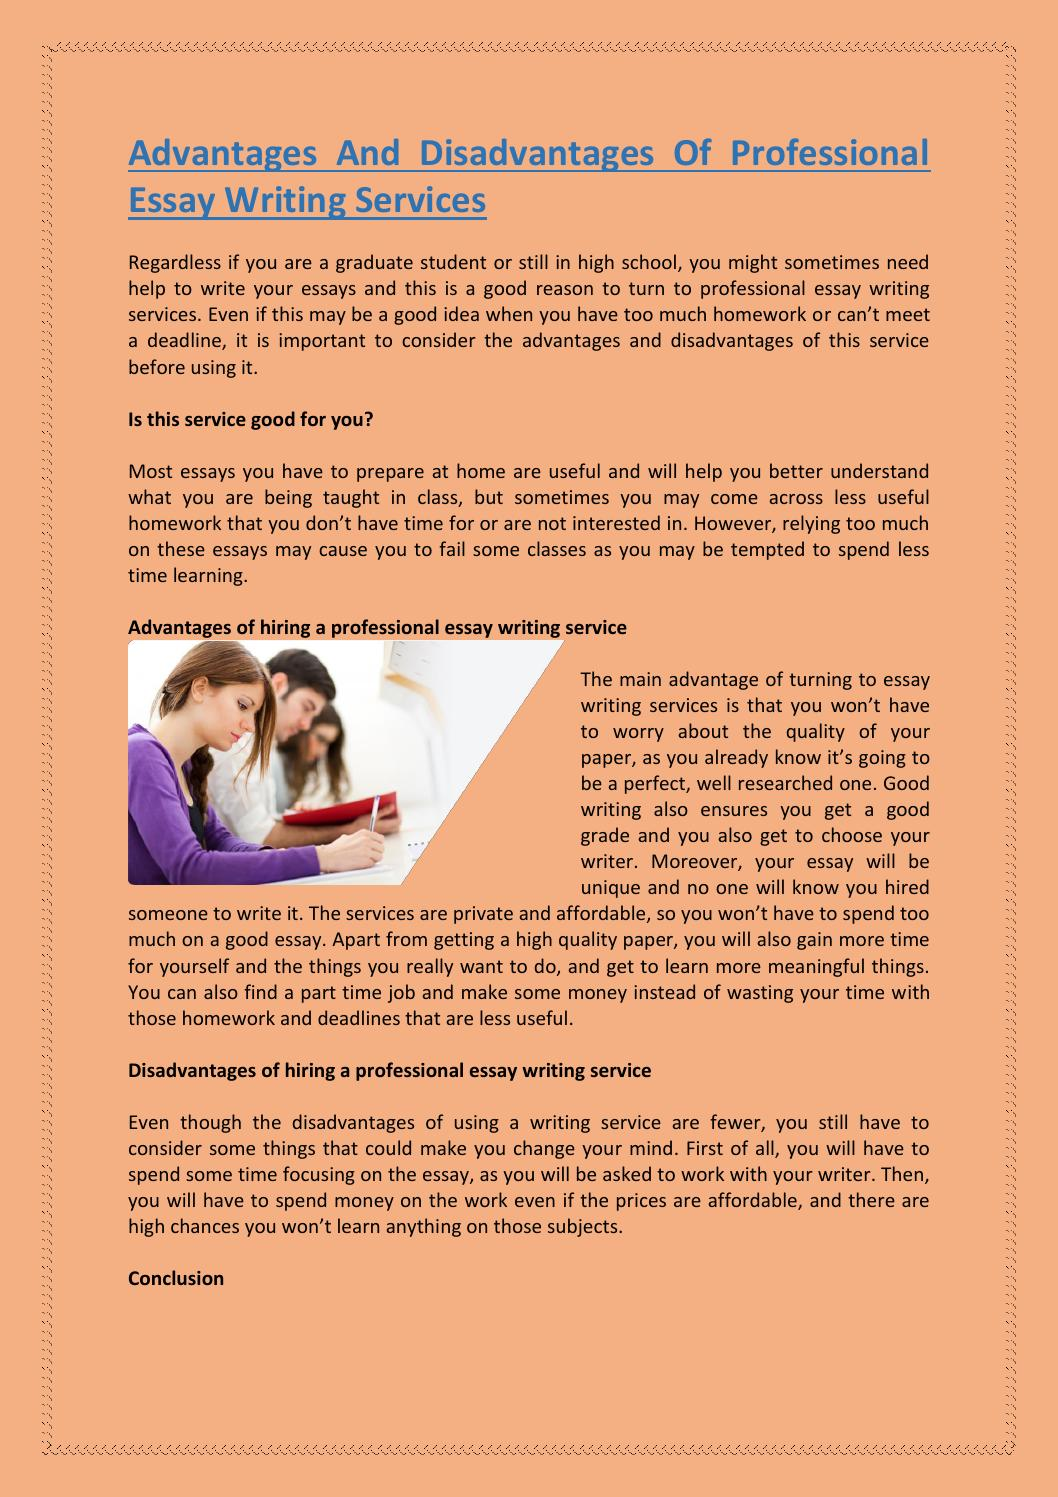 Tears Of A Tiger Essay Advantages And Disadvantages Of Professional Essay Writing Services By  Kimberlyahoney  Issuu English Model Essays also Vignette Essay Advantages And Disadvantages Of Professional Essay Writing Services  Essay Sample Format